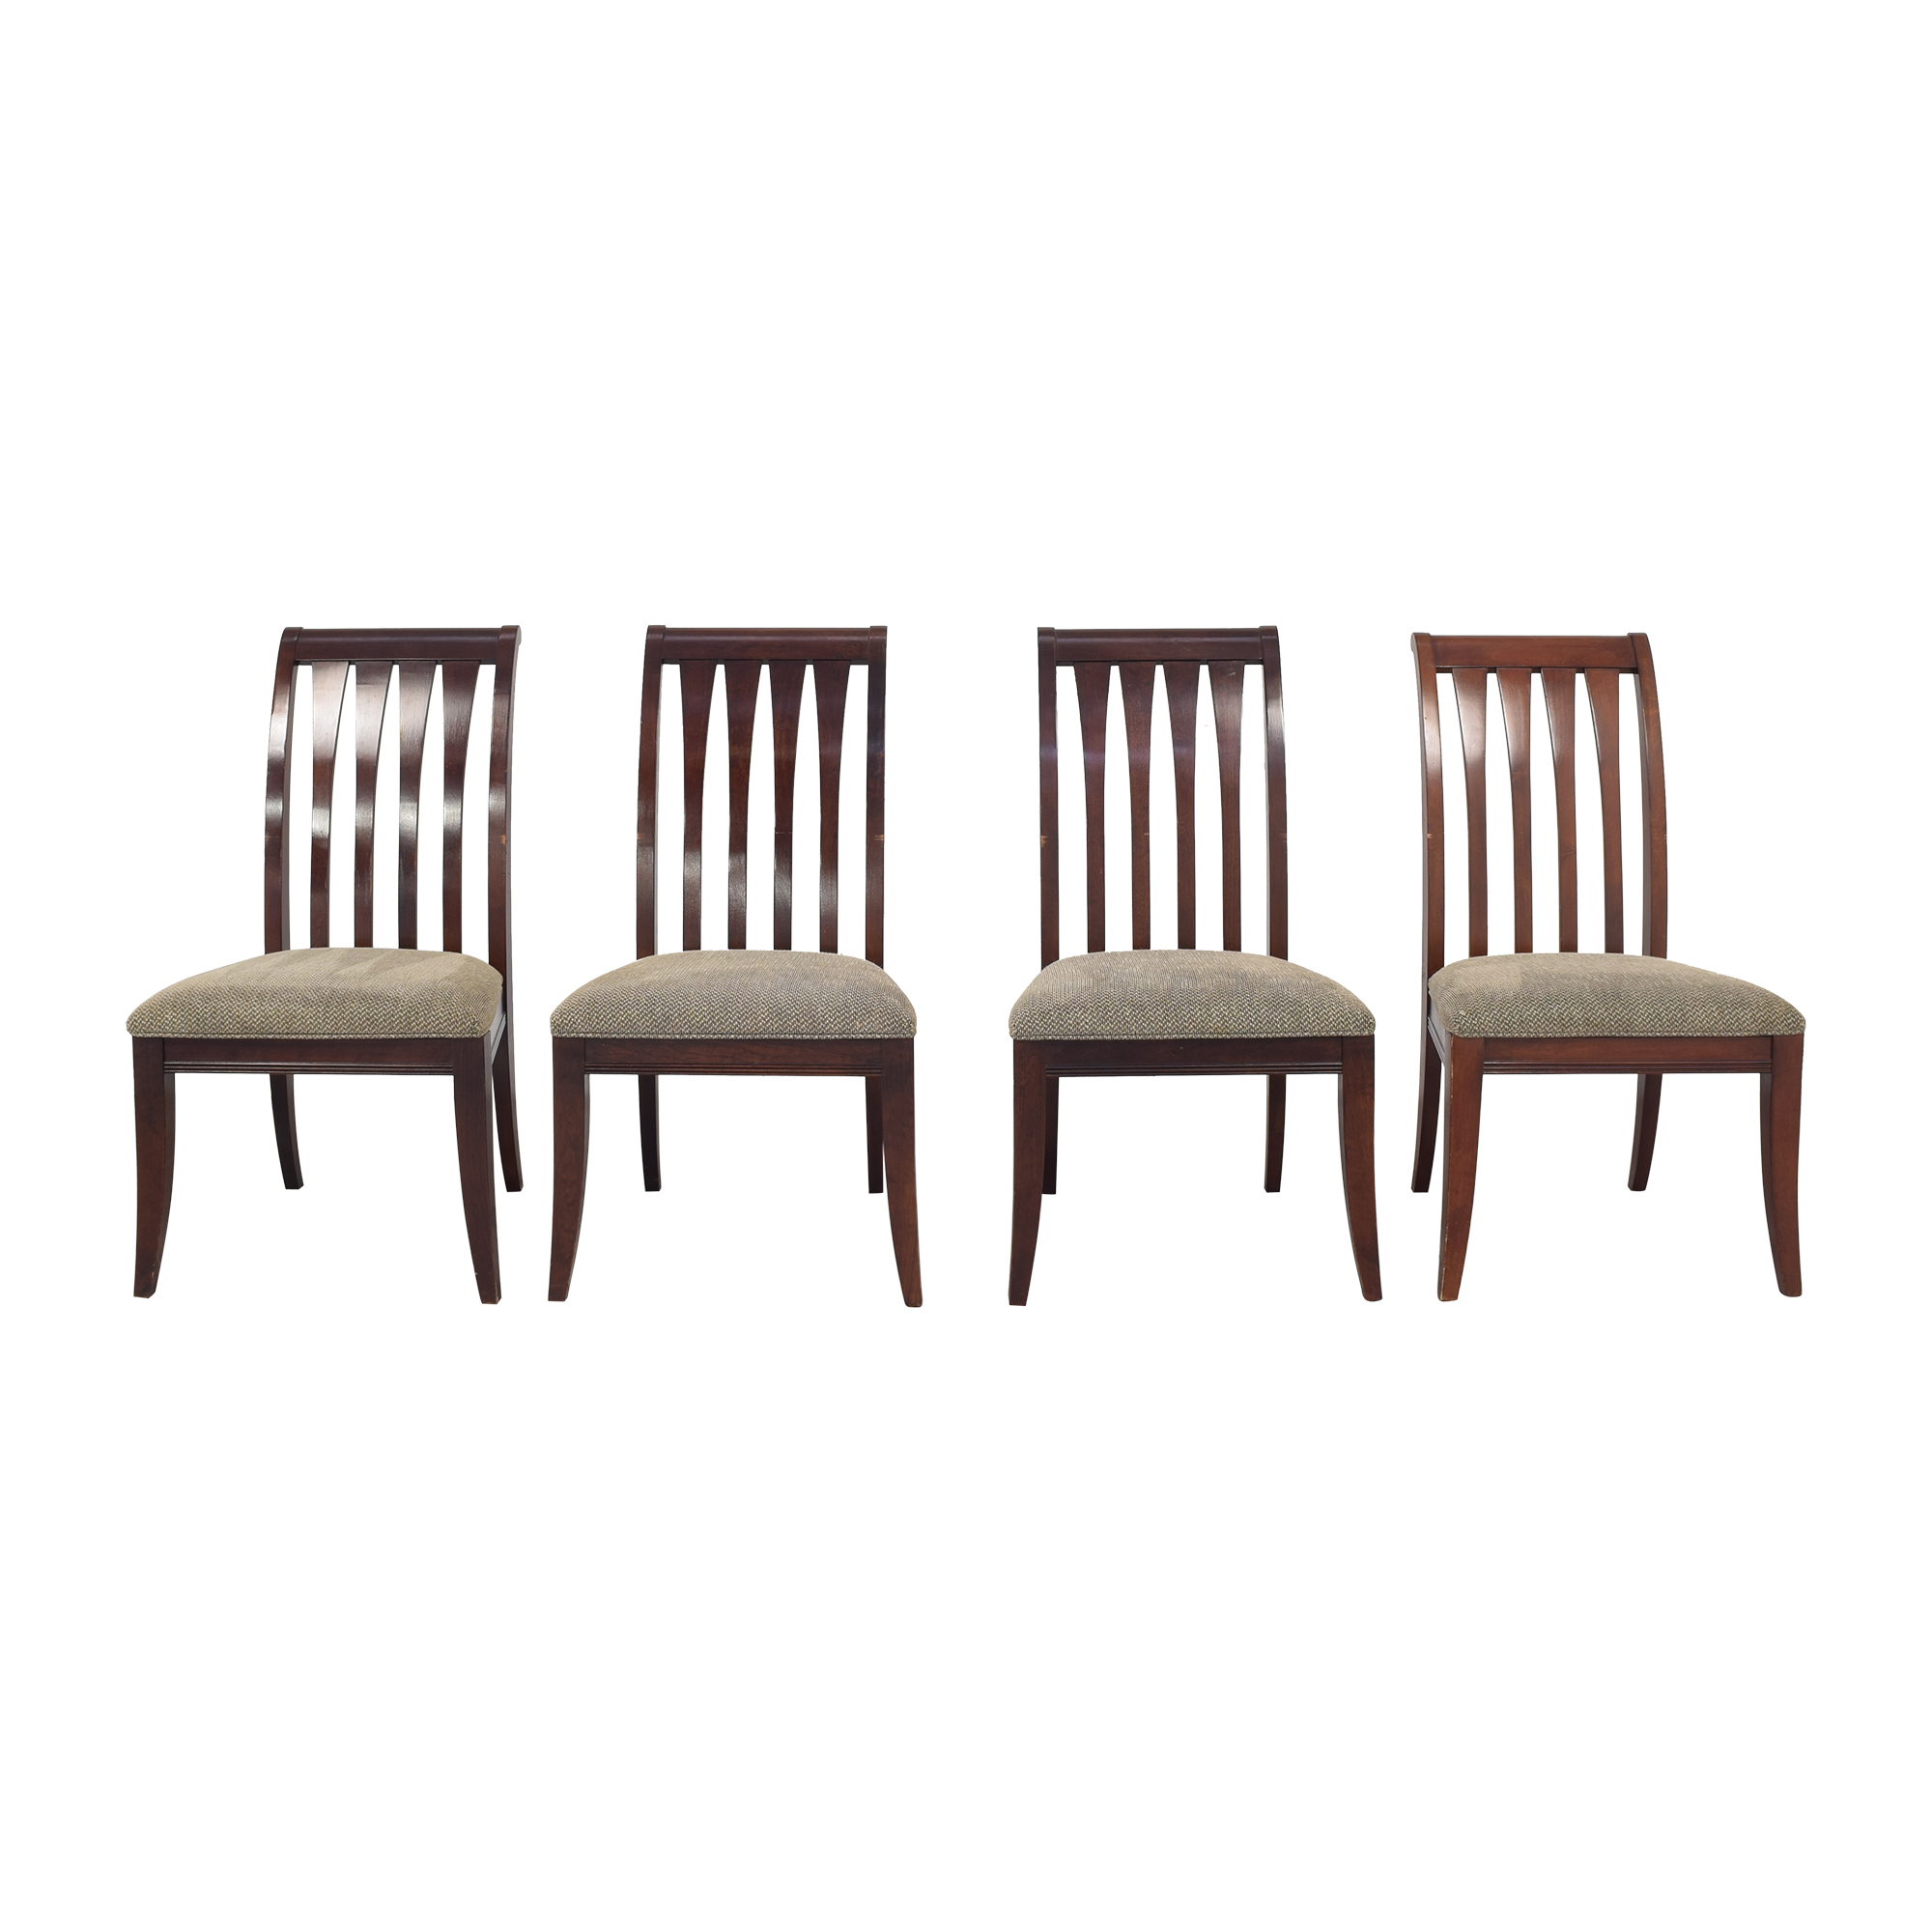 Ethan Allen Avenue Dining Chairs sale